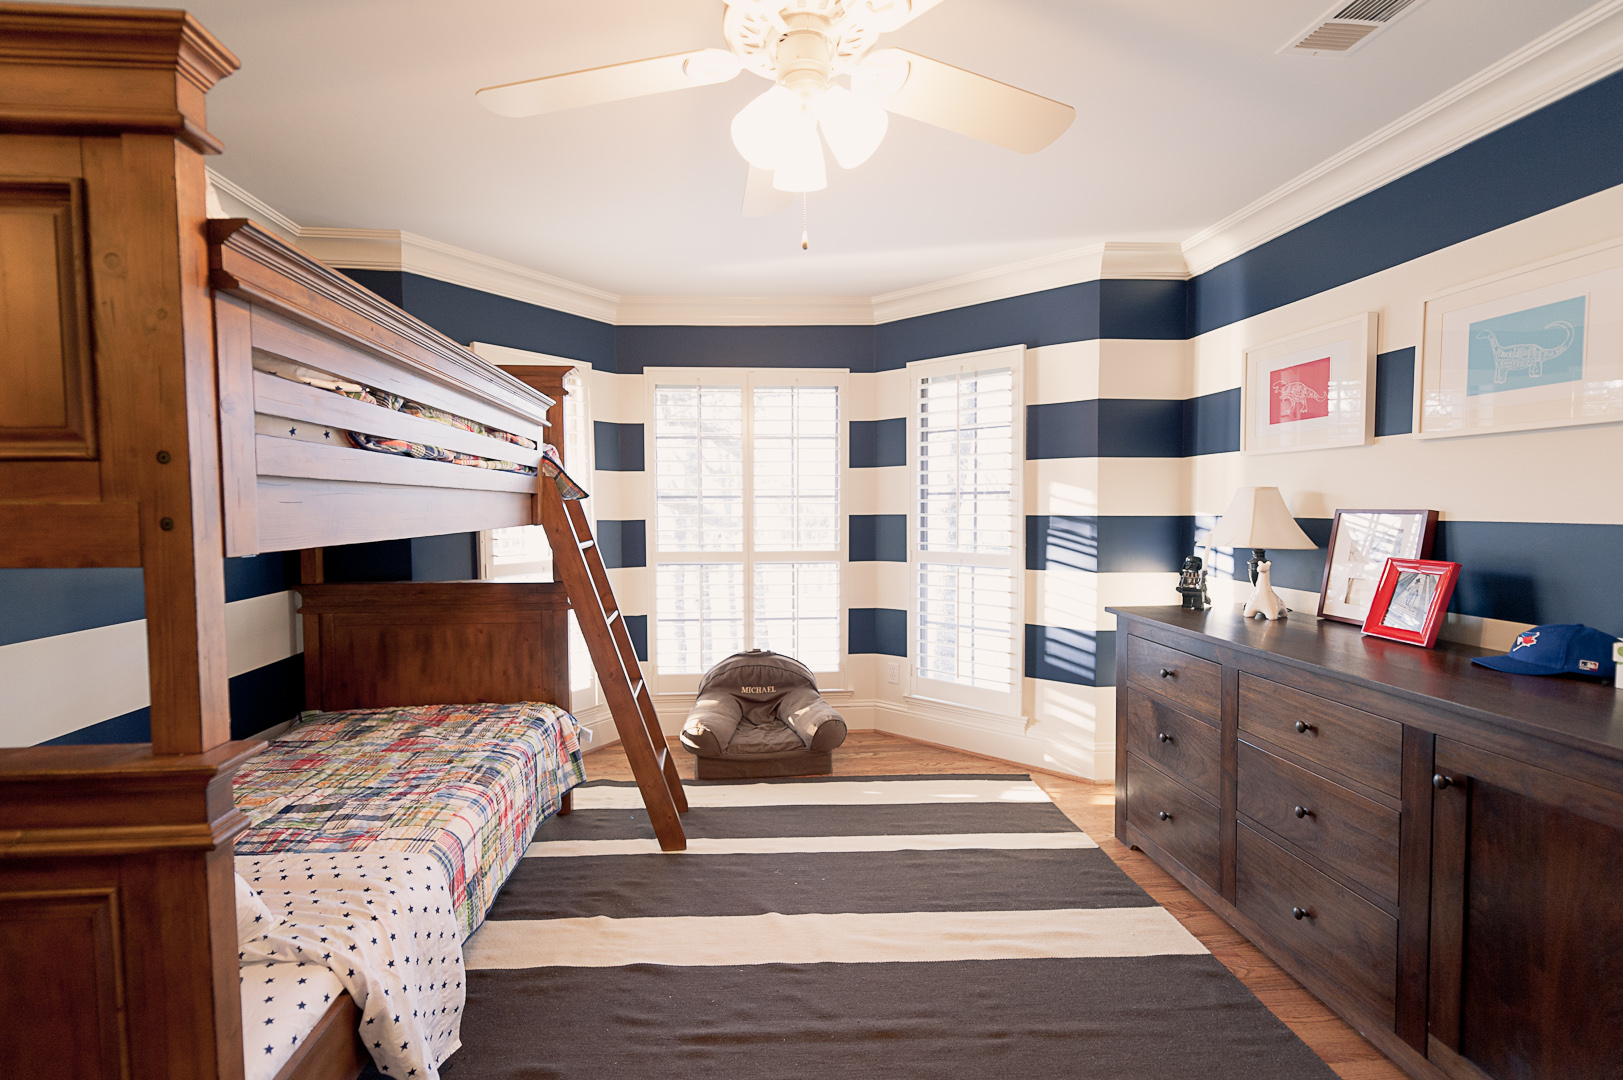 After: I couldn't go for solid navy walls per Michael's request, but I think he likes the compromise of the stripes.